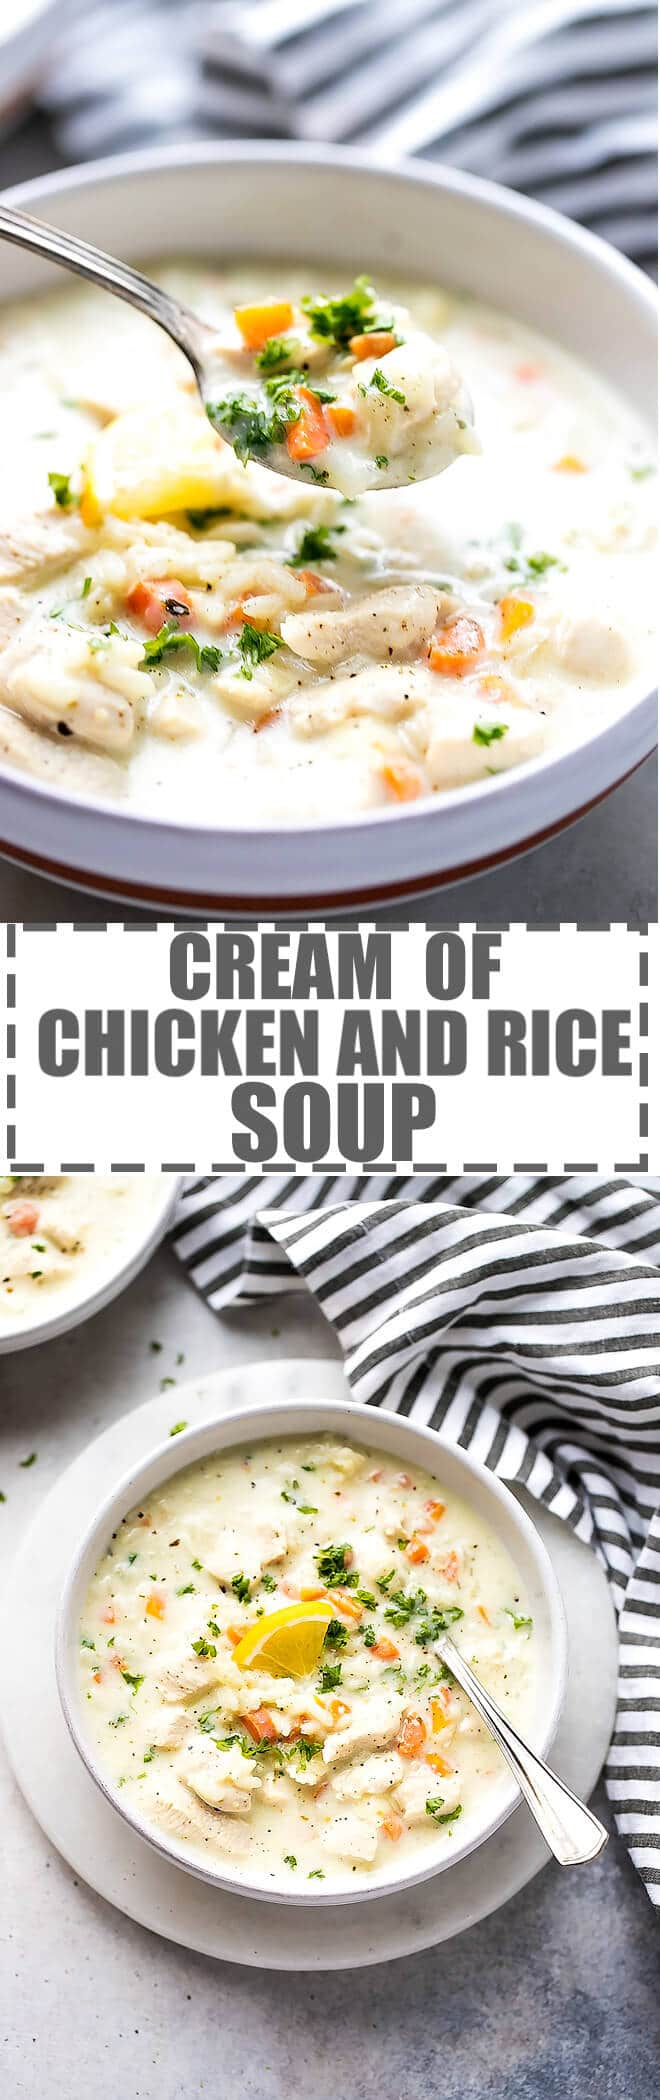 Easy Cream Of Chicken And Rice Soup Panera Inspired - the best soup on a cold and snowy day! Creamy, flavorful, filling and very easy to make in one pot. No slow cooker required. #chickensoup #chickenrecipes #creamofchickensoup #rice